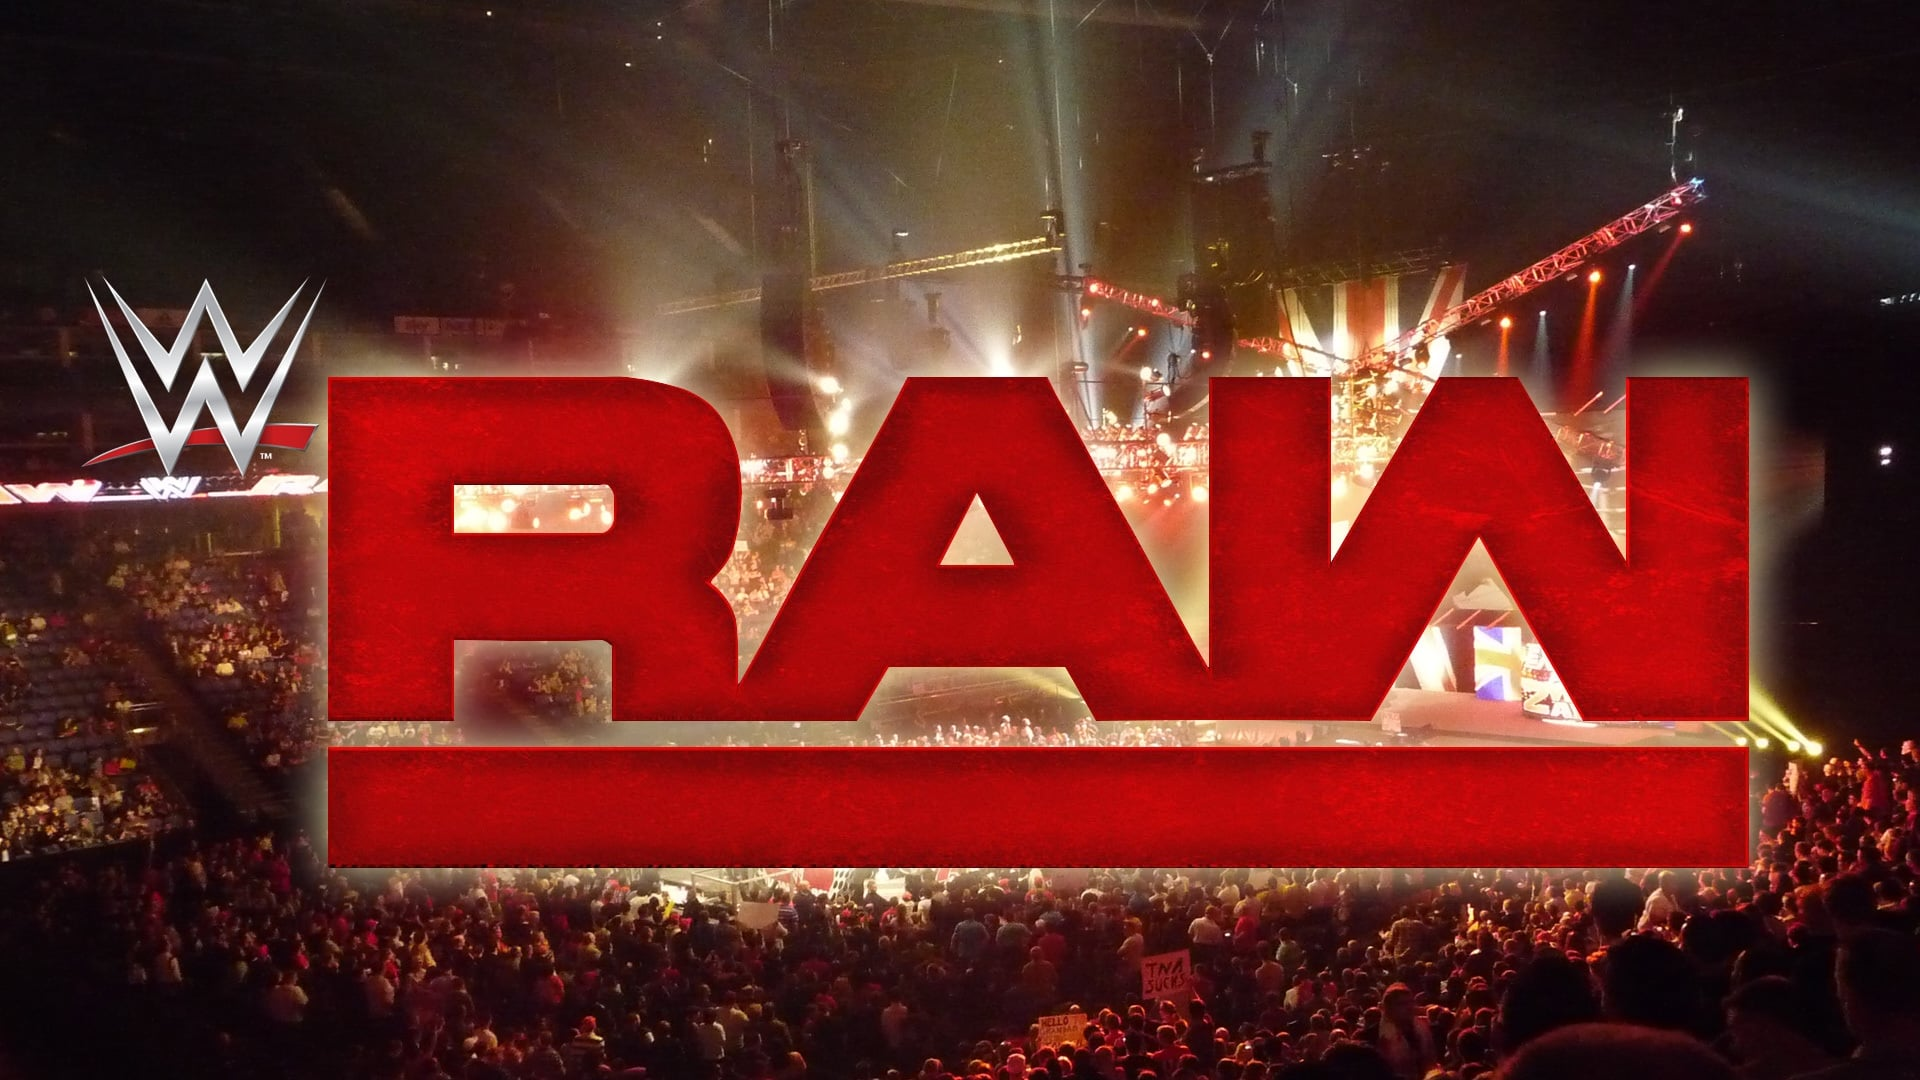 WWE Raw - Season 22 Episode 22 : June 2, 2014 (Indianapolis, IN)